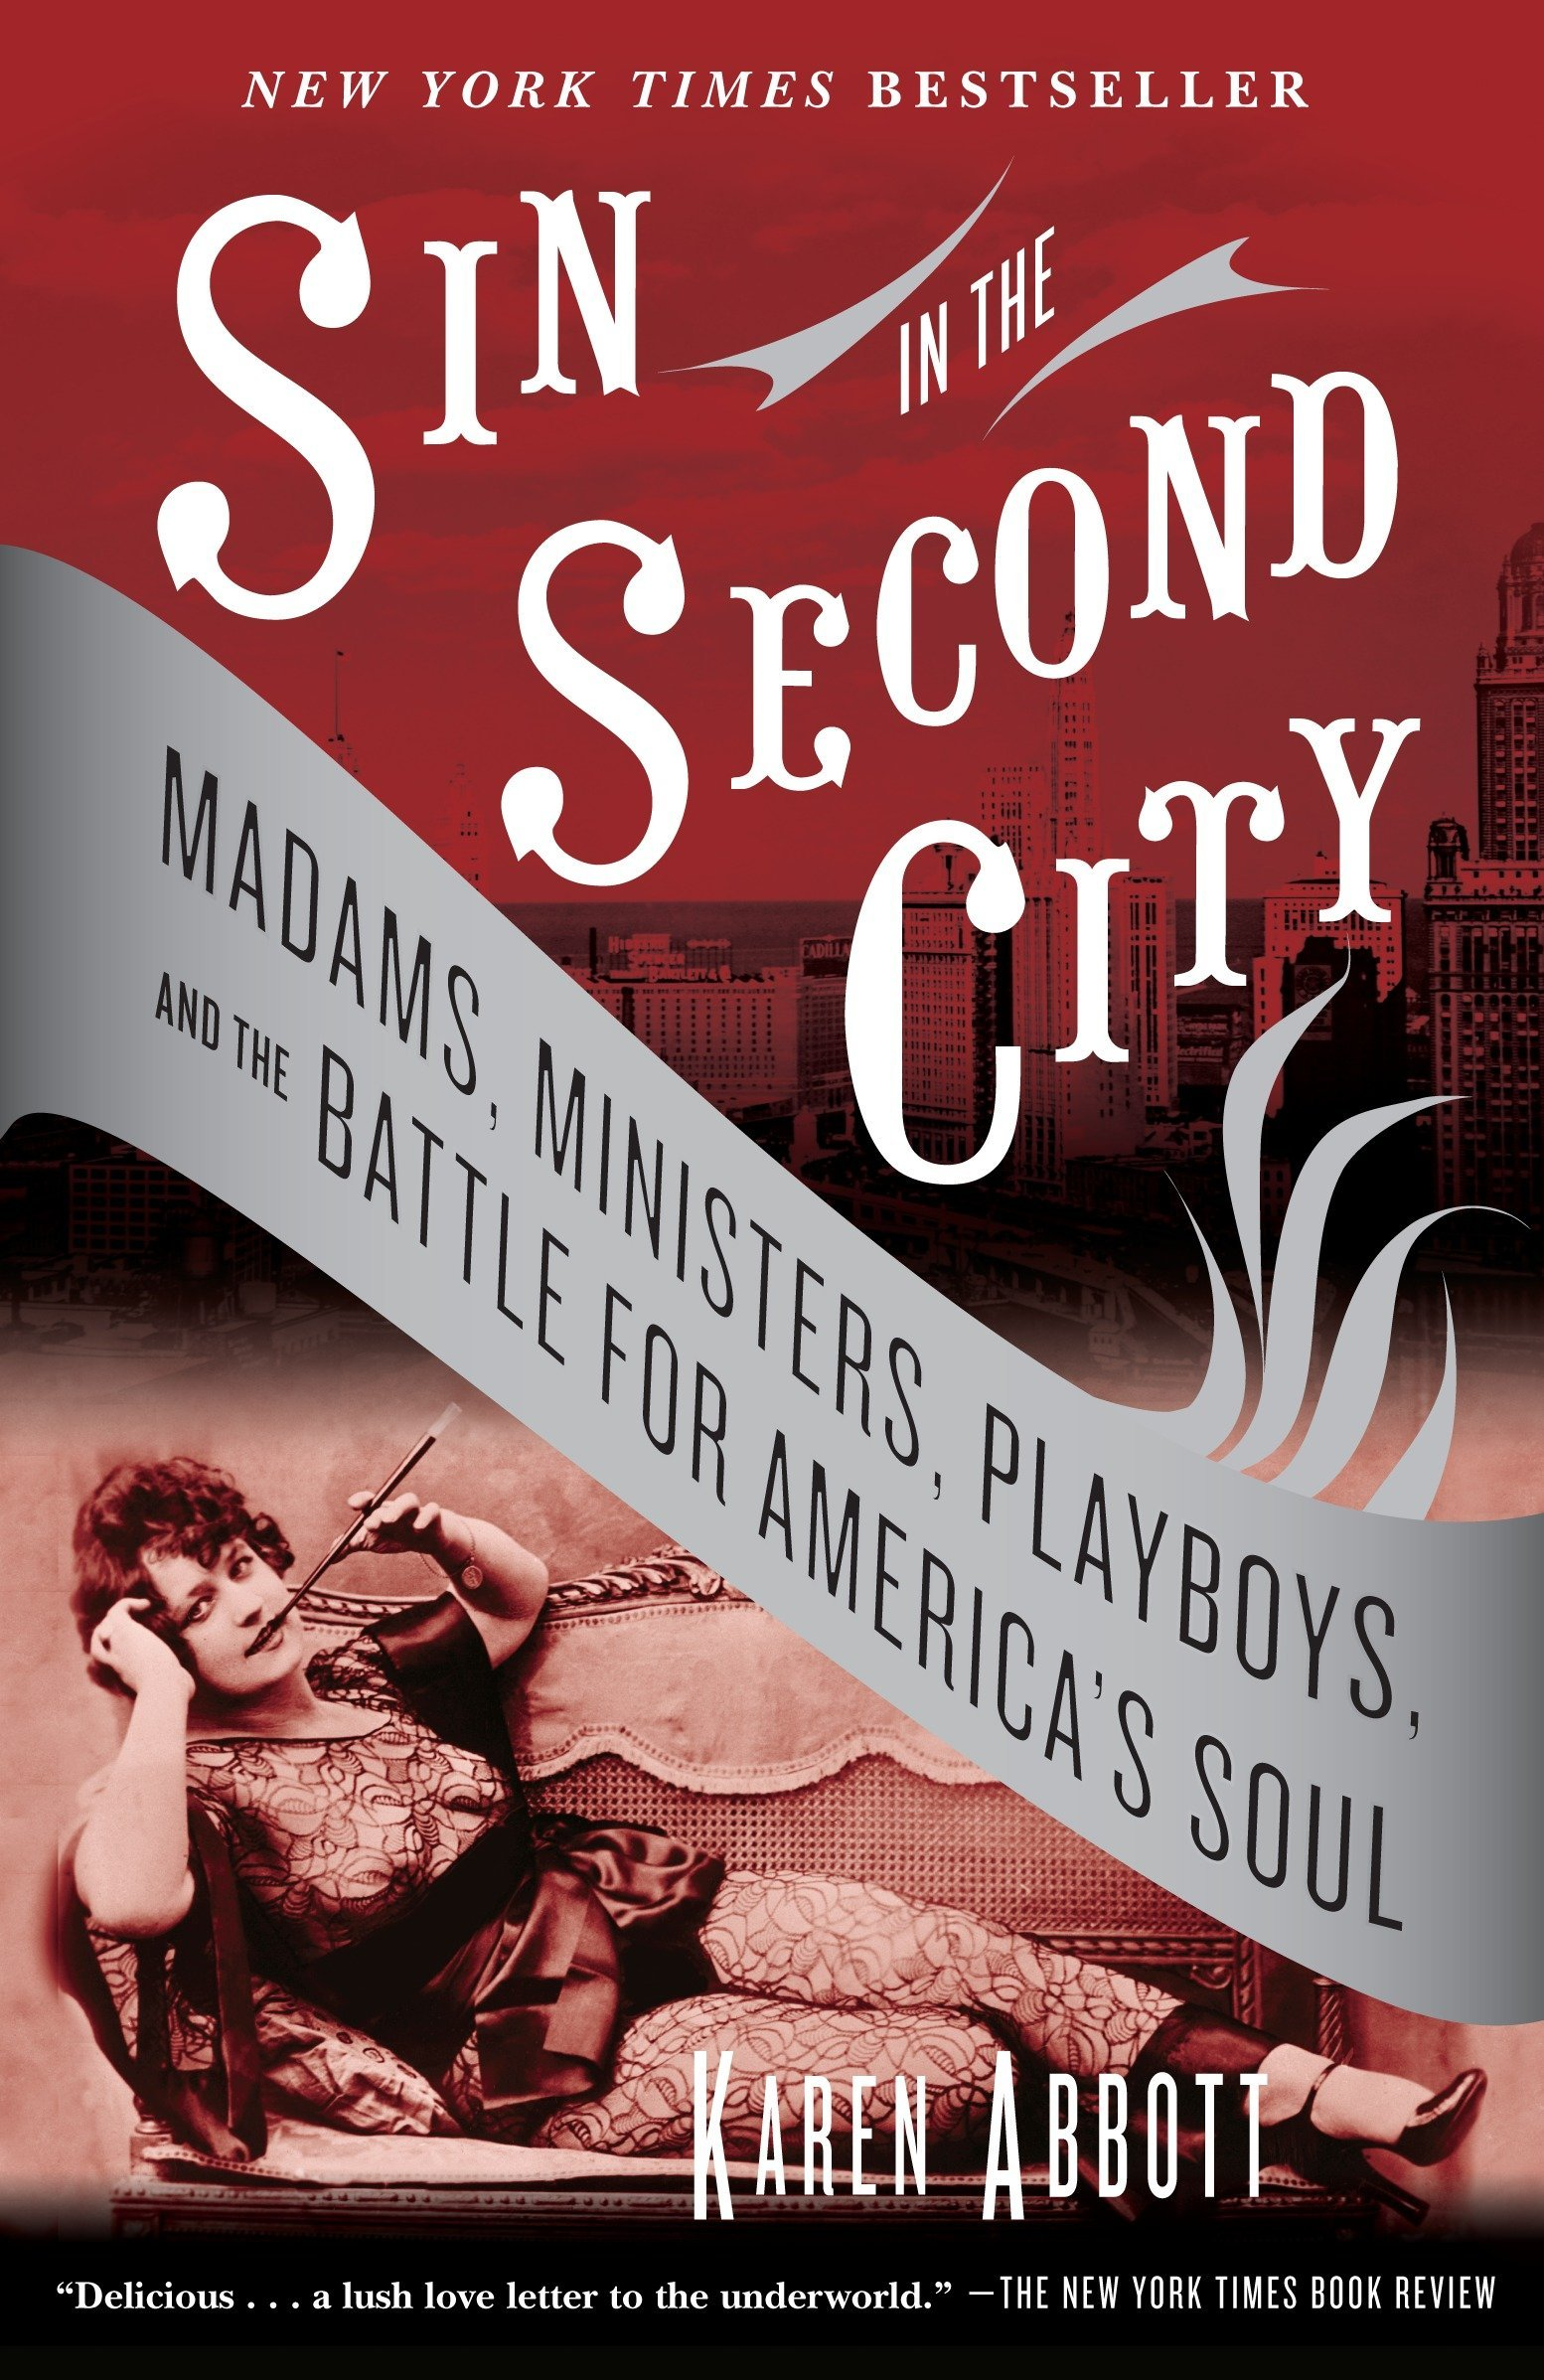 Sin in the Second City: Madams, Ministers, Playboys, and the Battle for  America's Soul: Karen Abbott: 9780812975994: Amazon.com: Books